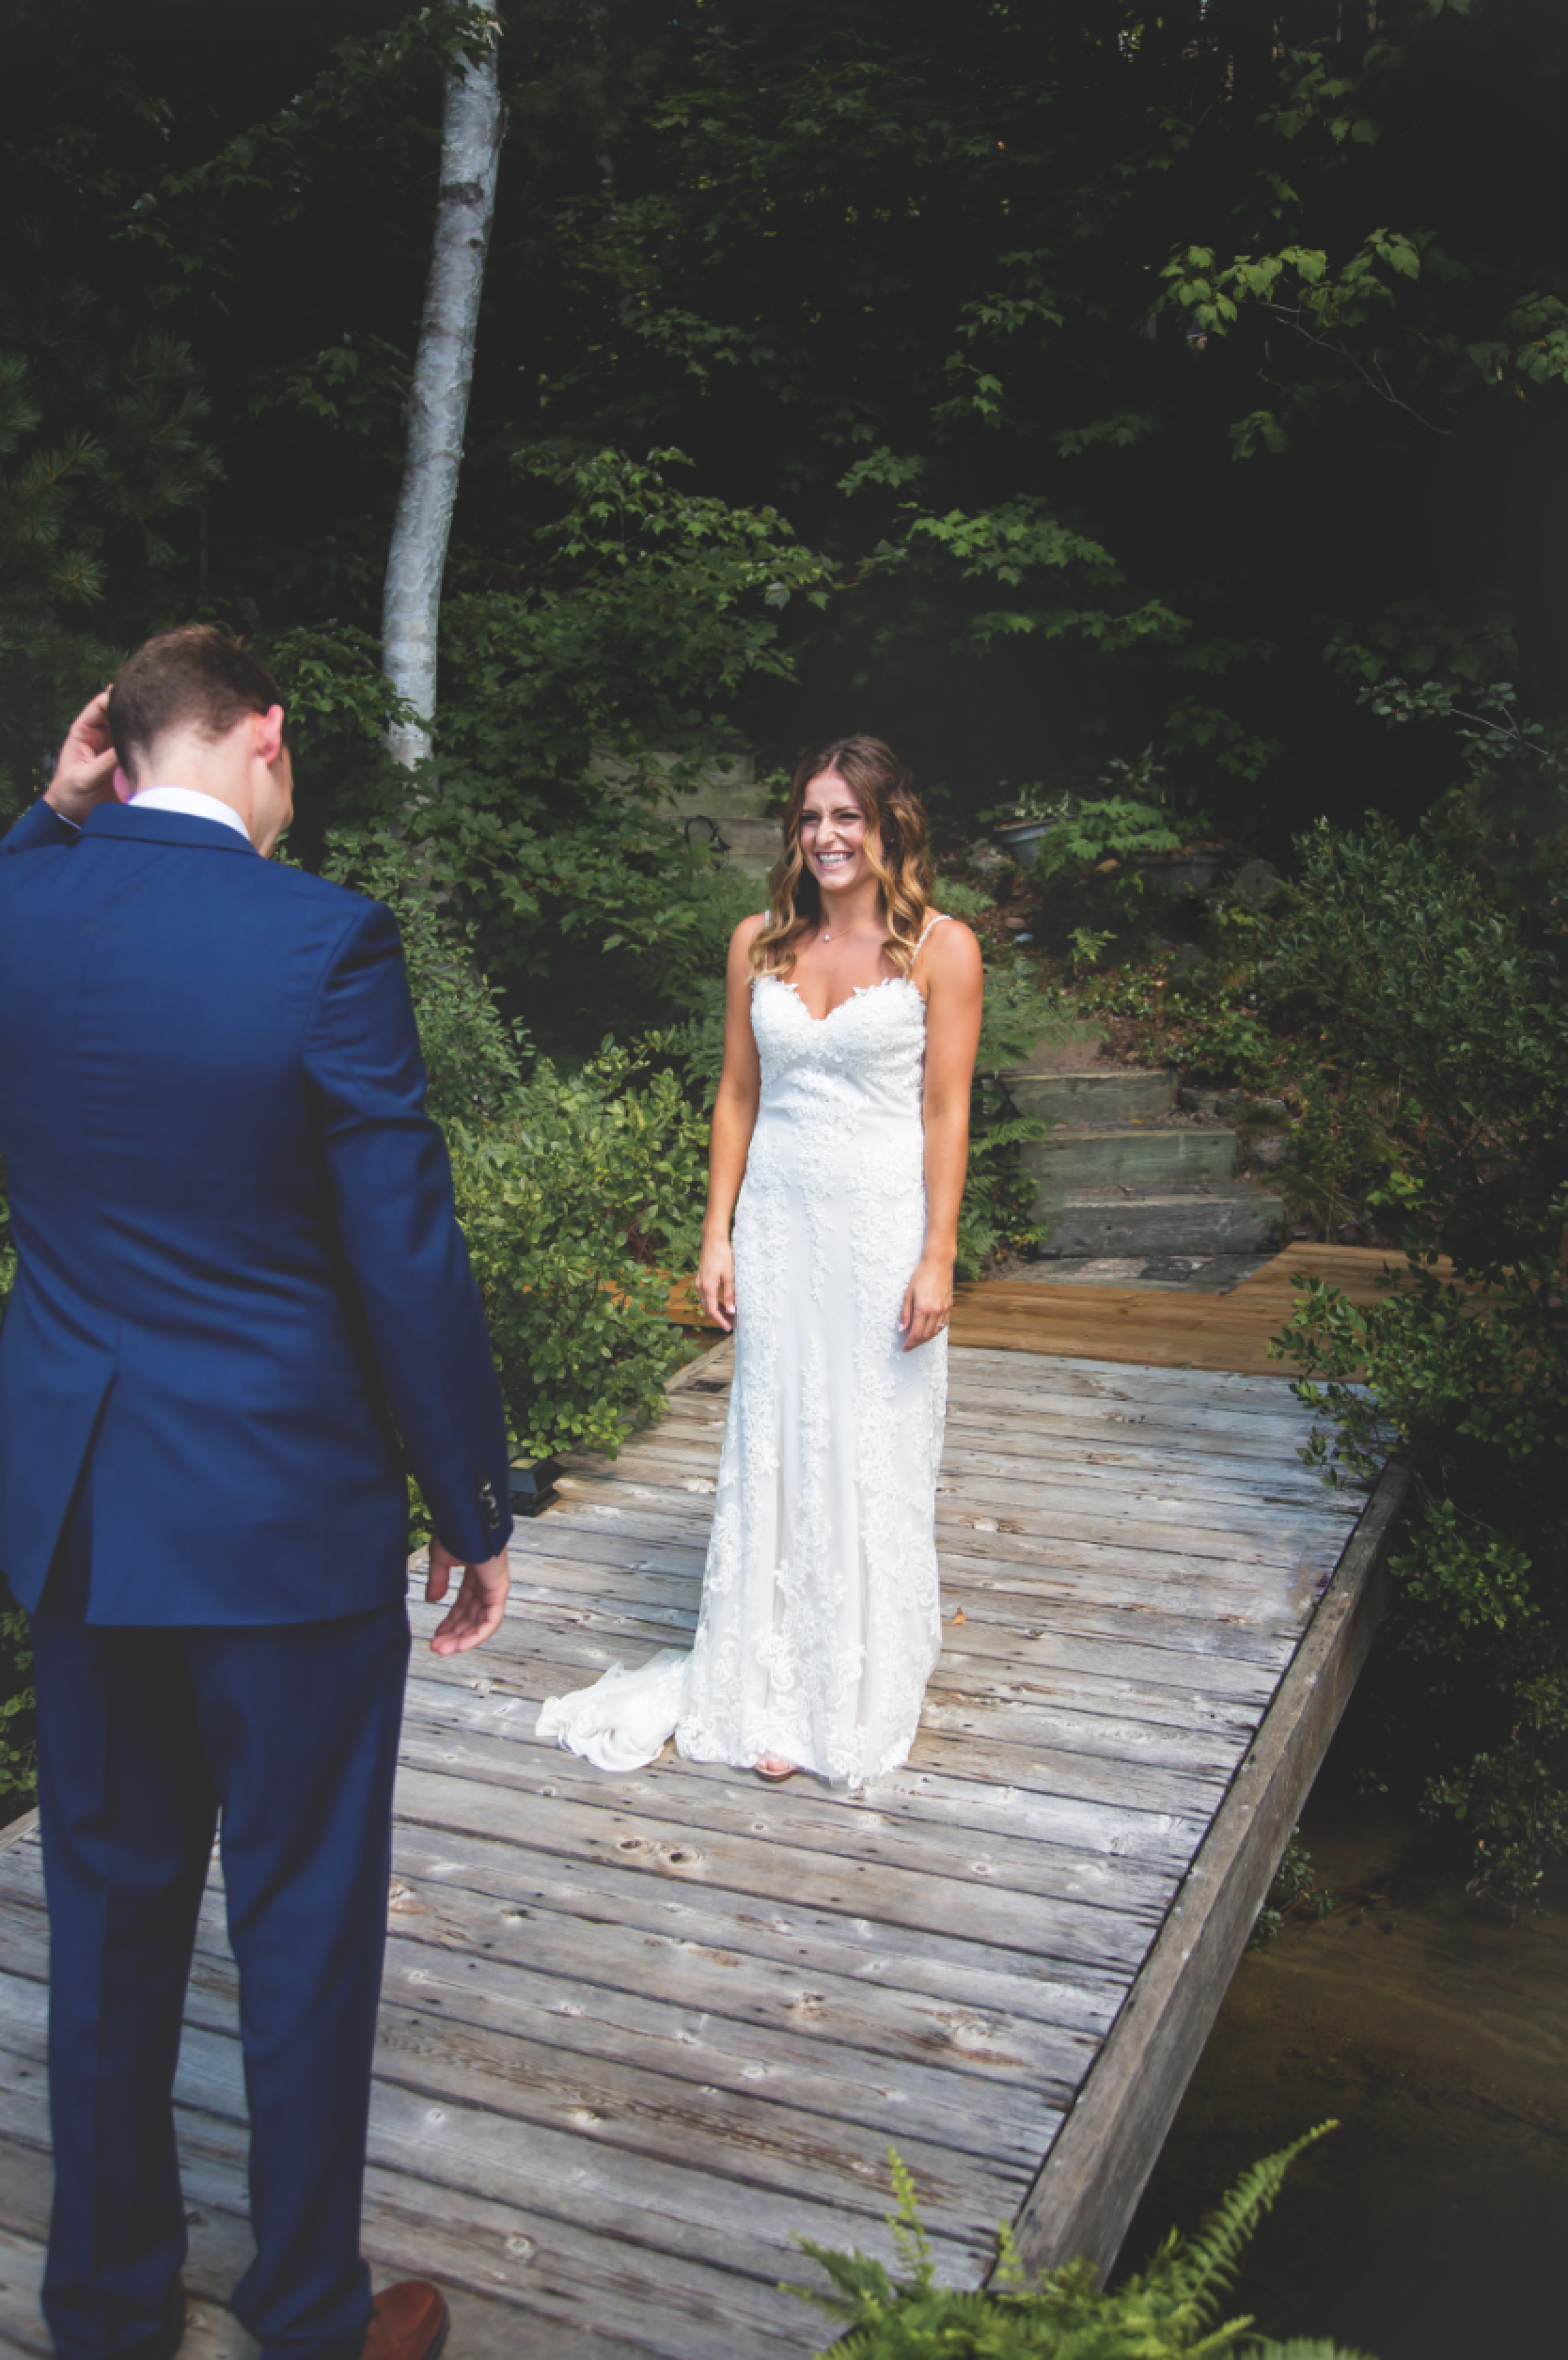 Wedding-Photos-Muskoka-Clevelands-House-Photographer-Wedding-Hamilton-GTA-Niagara-Oakville-Moments-by-Lauren-Photography-Photo-Image-24.png